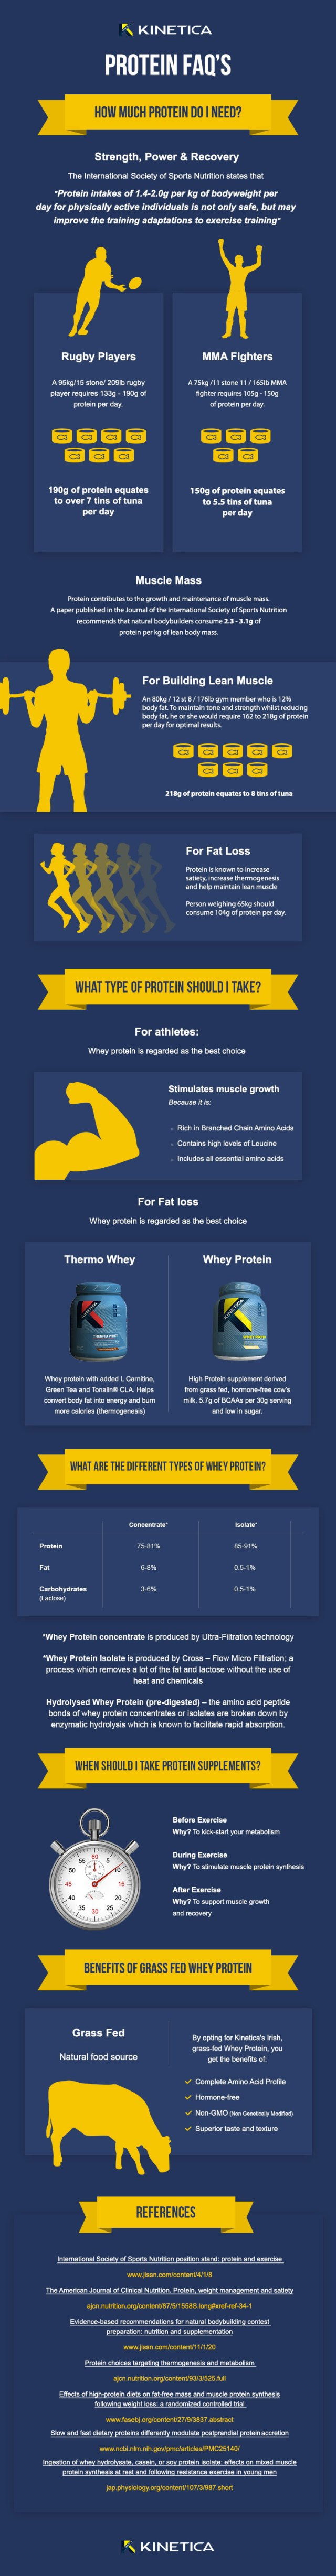 protein-infographic-kinetica